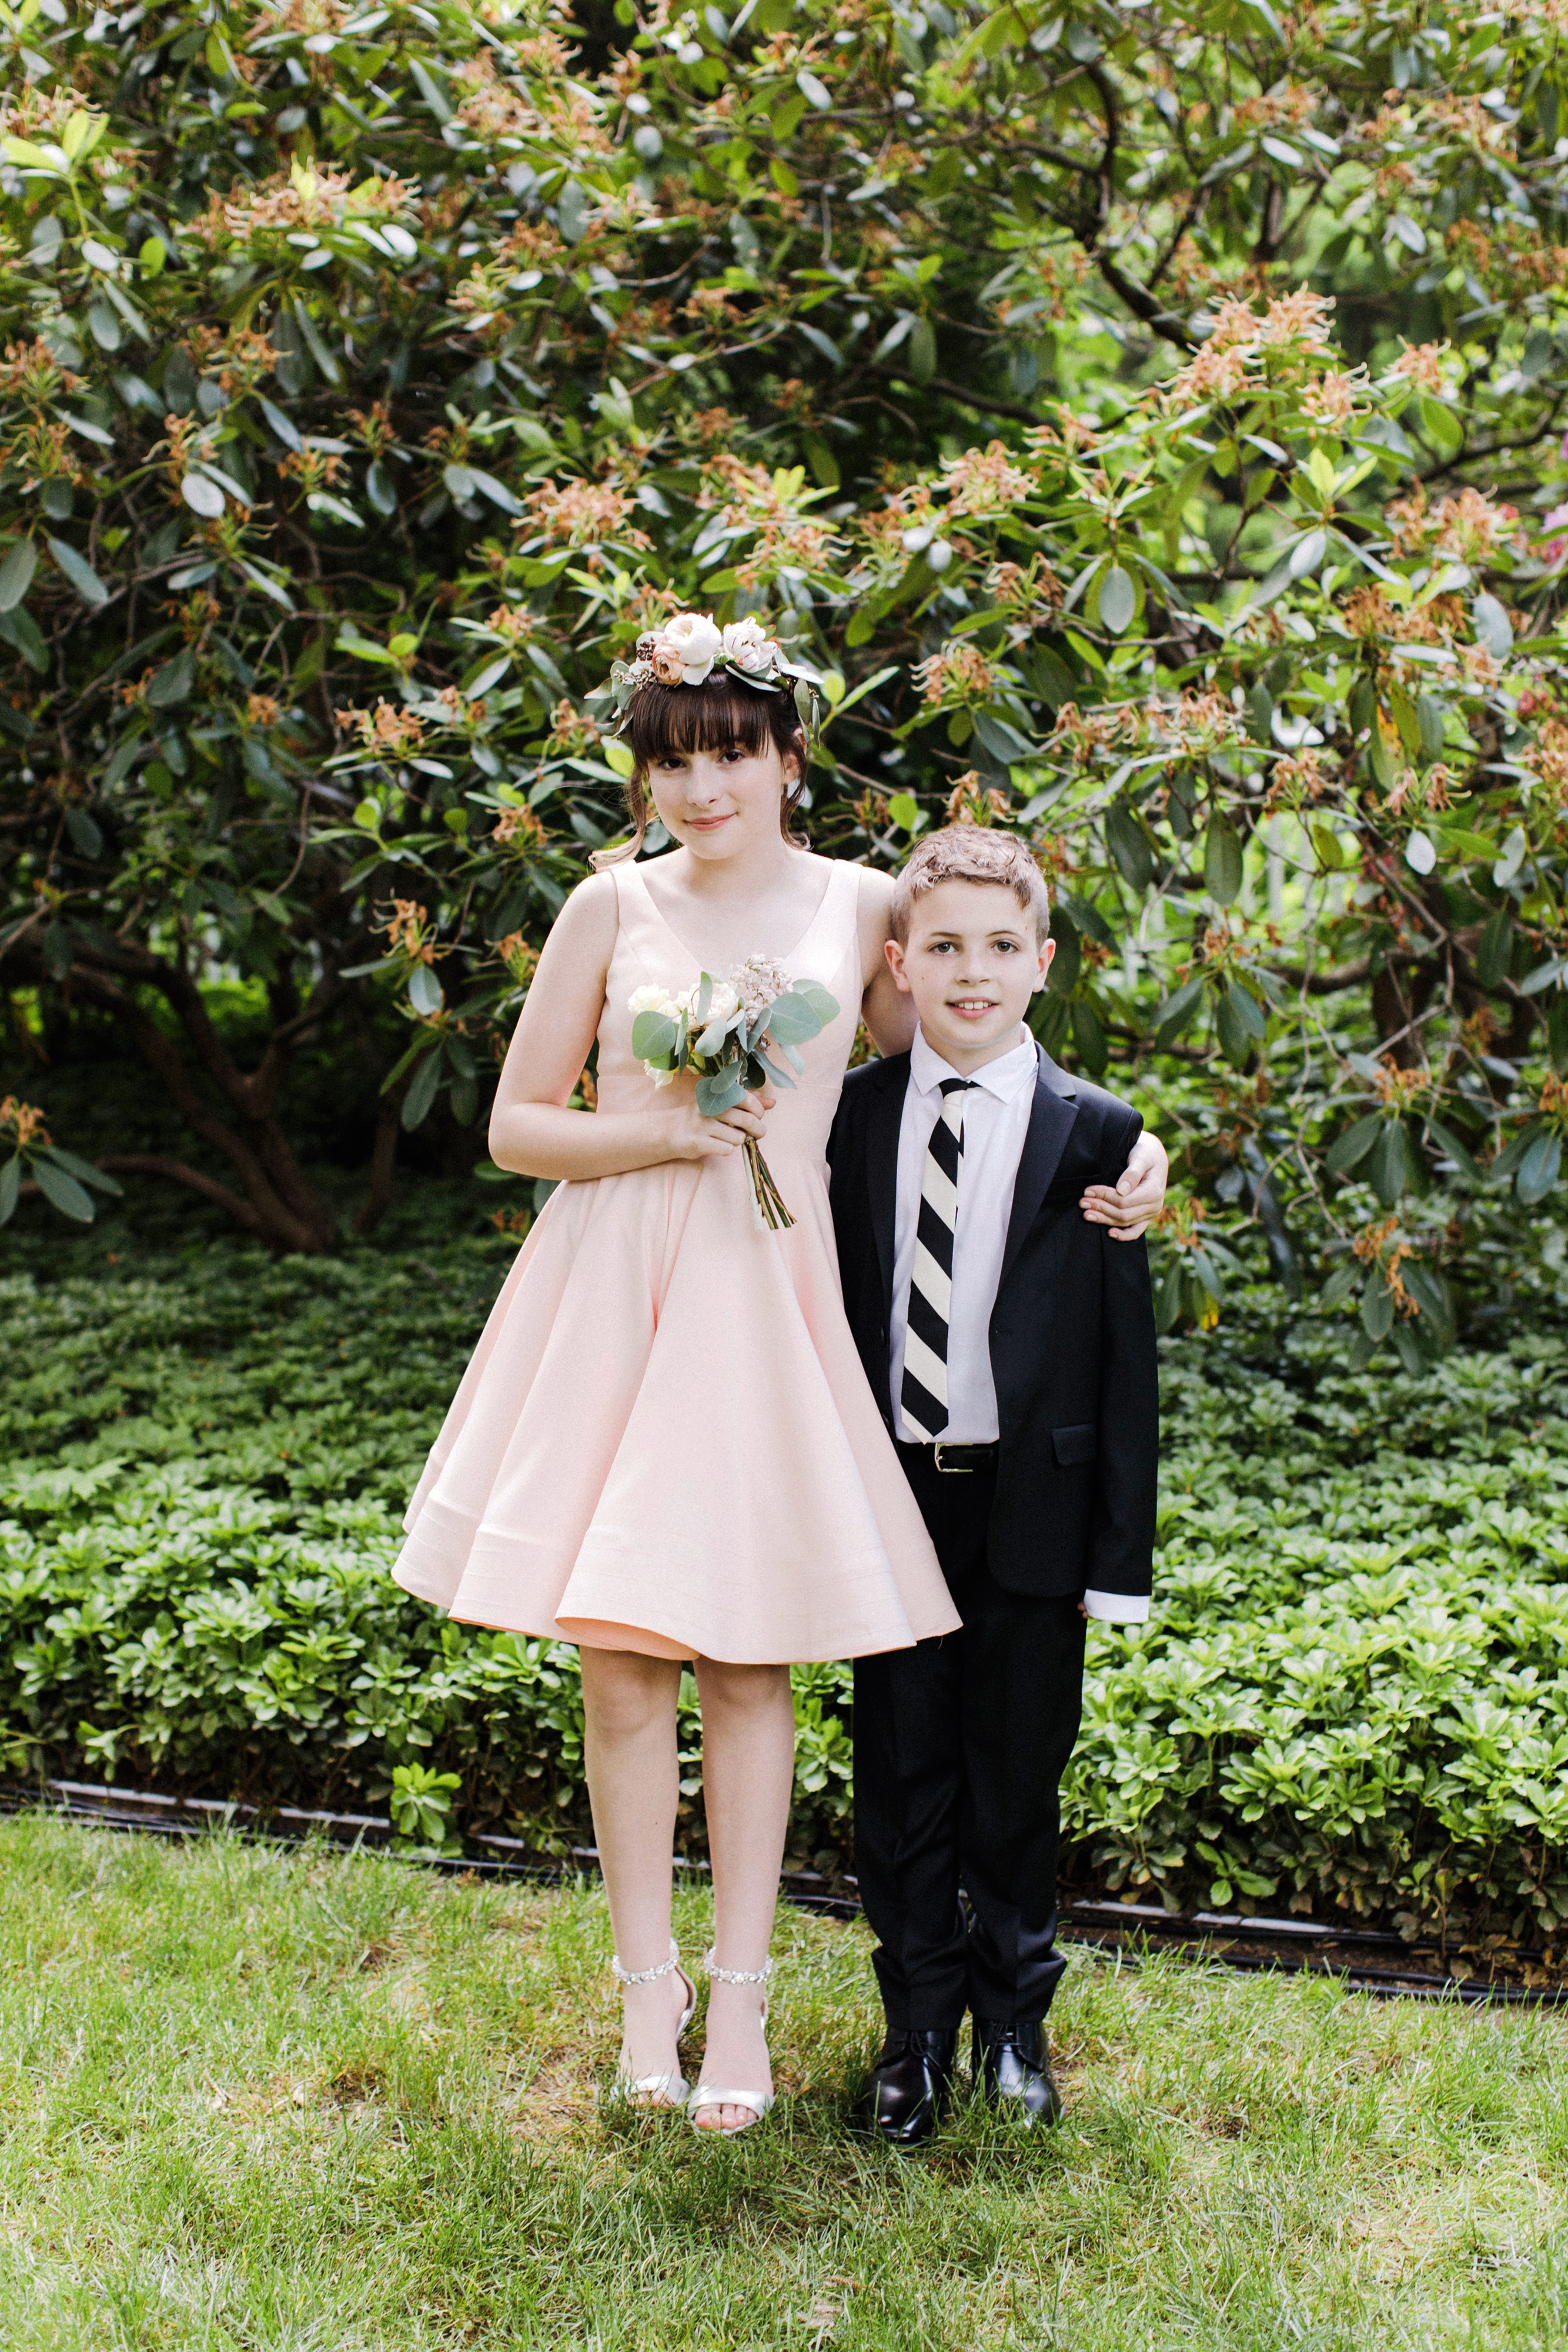 eden jack wedding kids